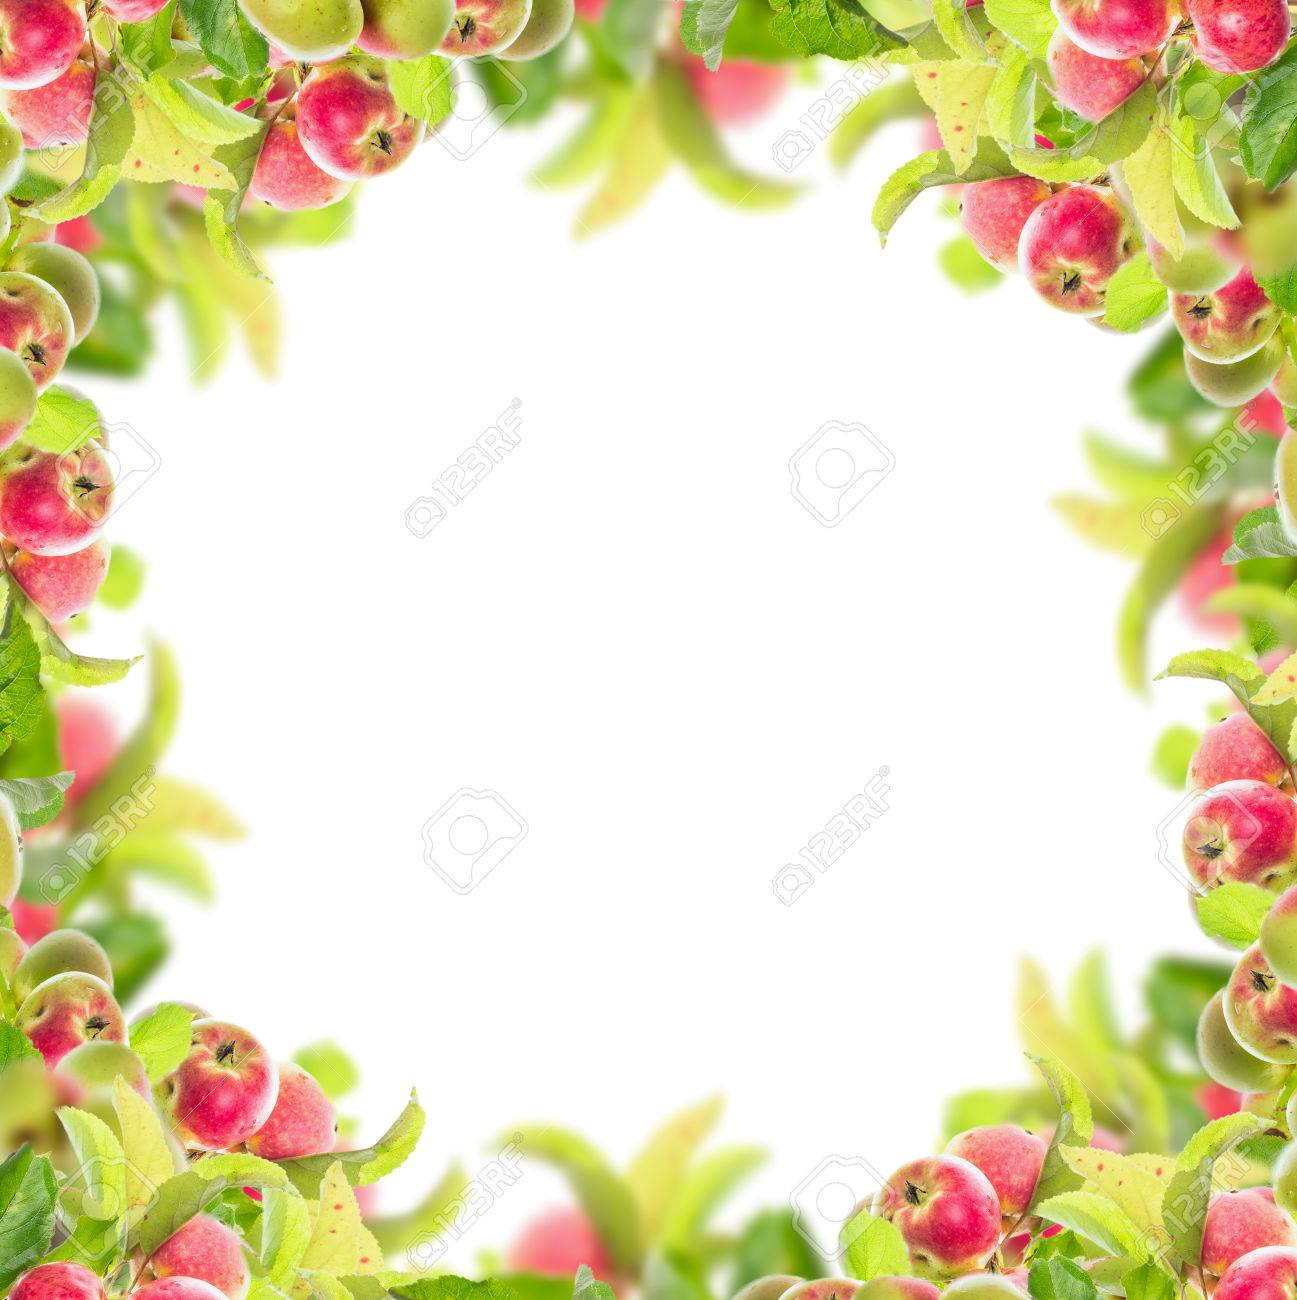 Apple Branch With Apples And Leaves Square Rectangular Frame